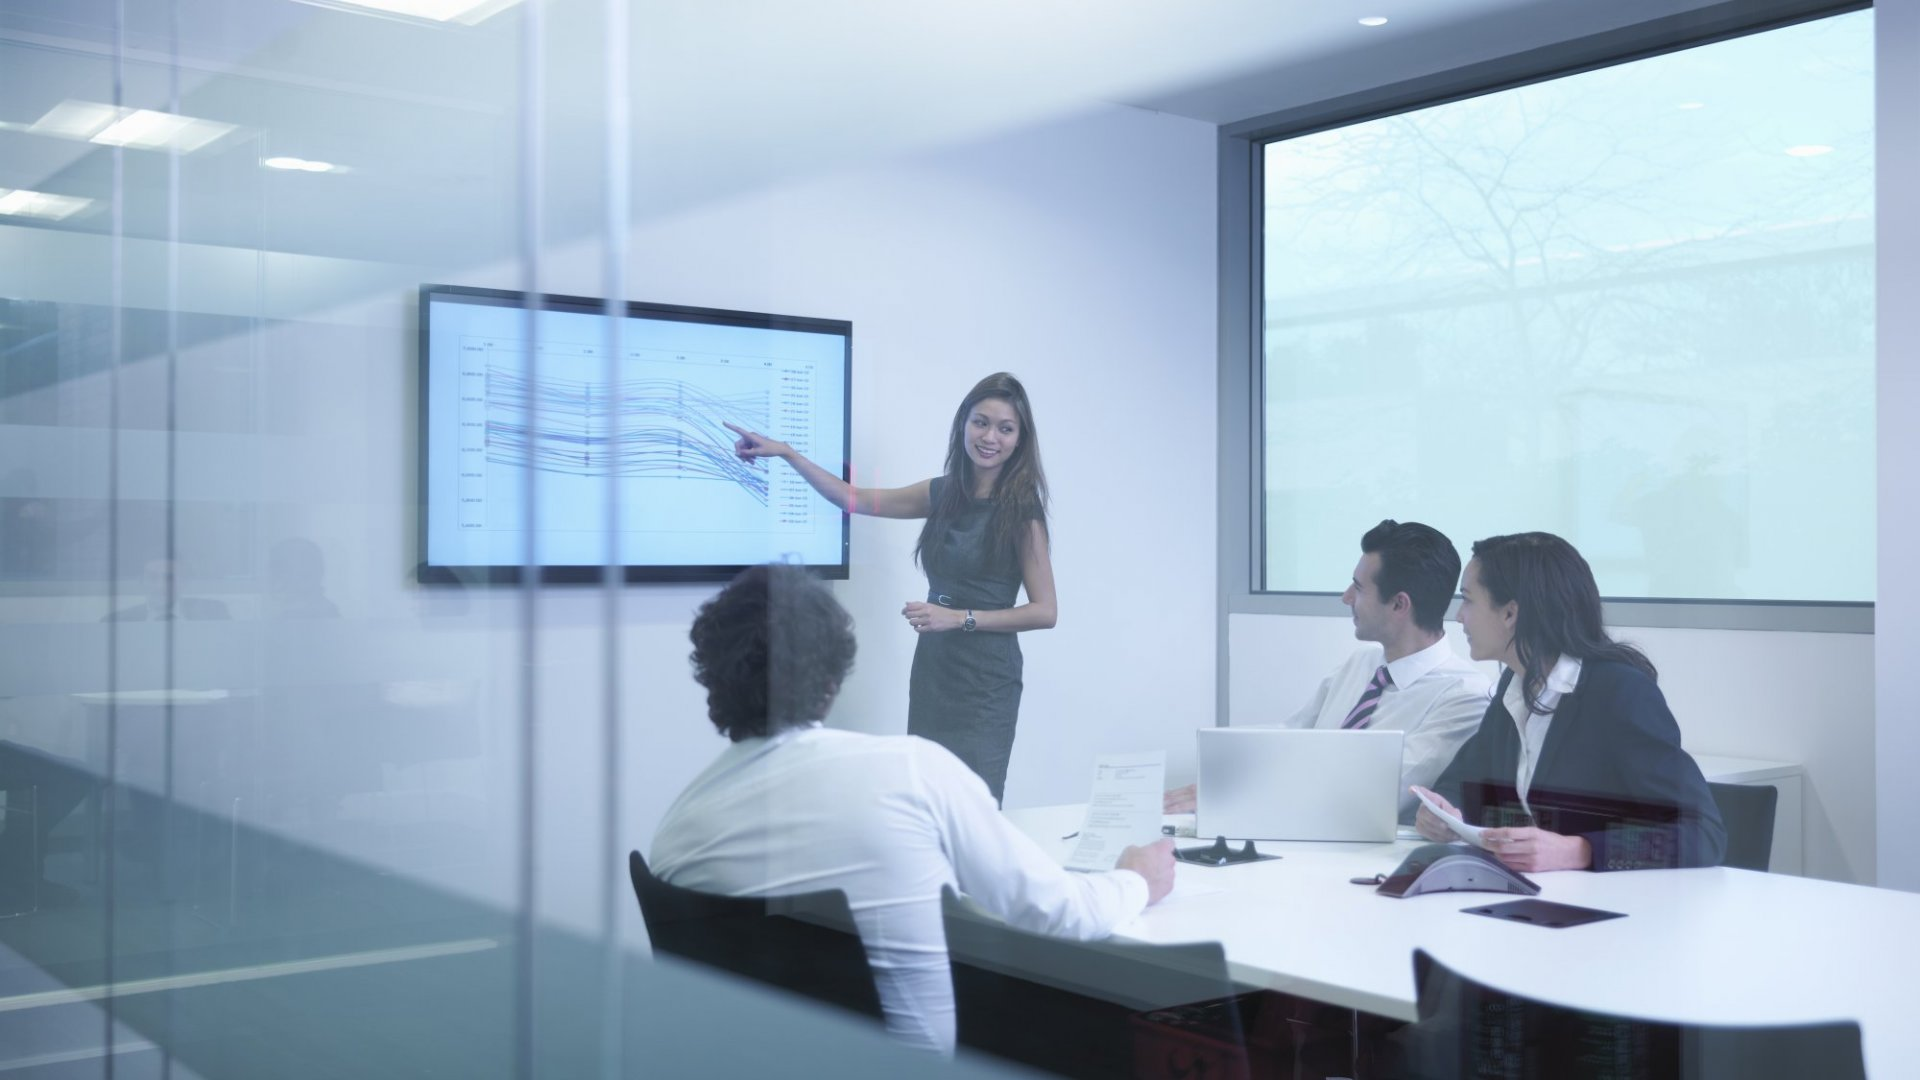 14 Myths About How to Give a Great Presentation